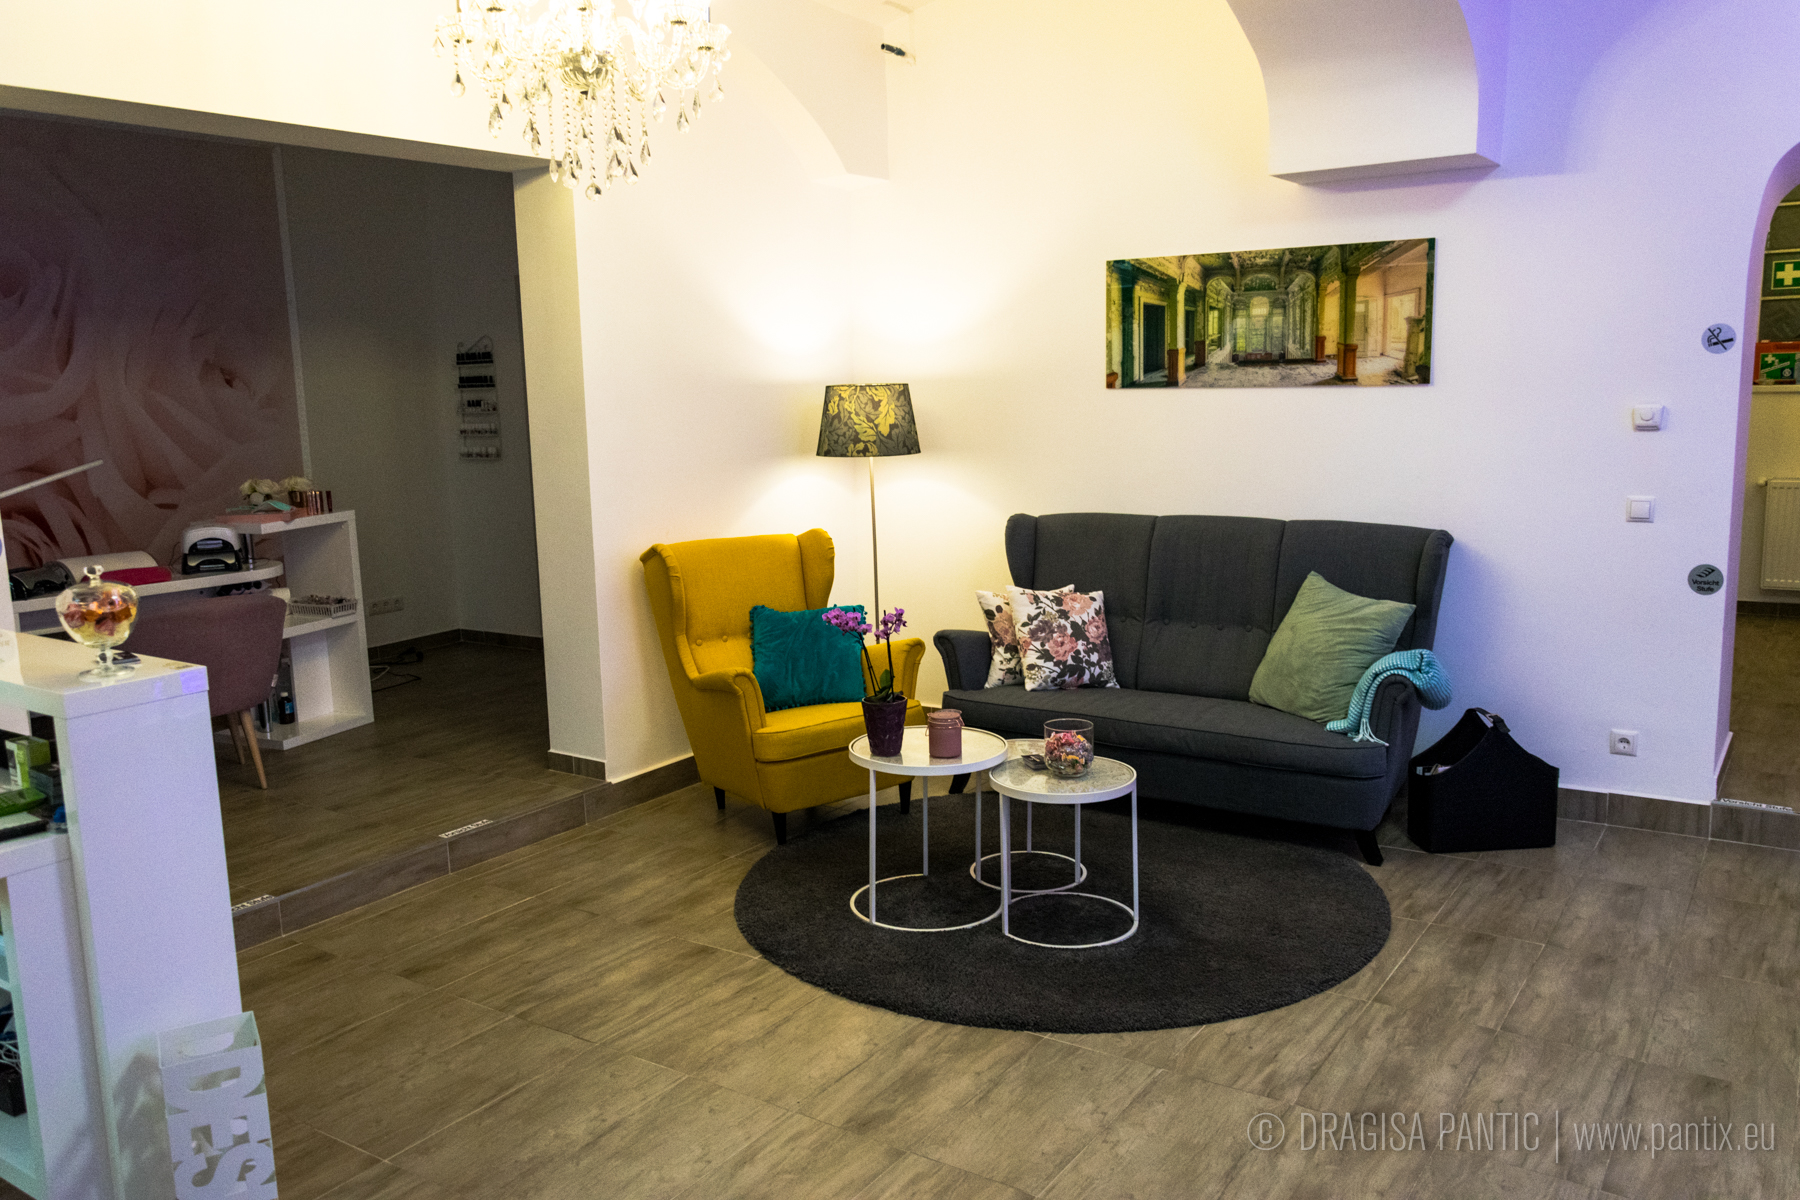 BEAUTY RAUM by Dragan | Kaiserstrasse 100, 1070 Wien